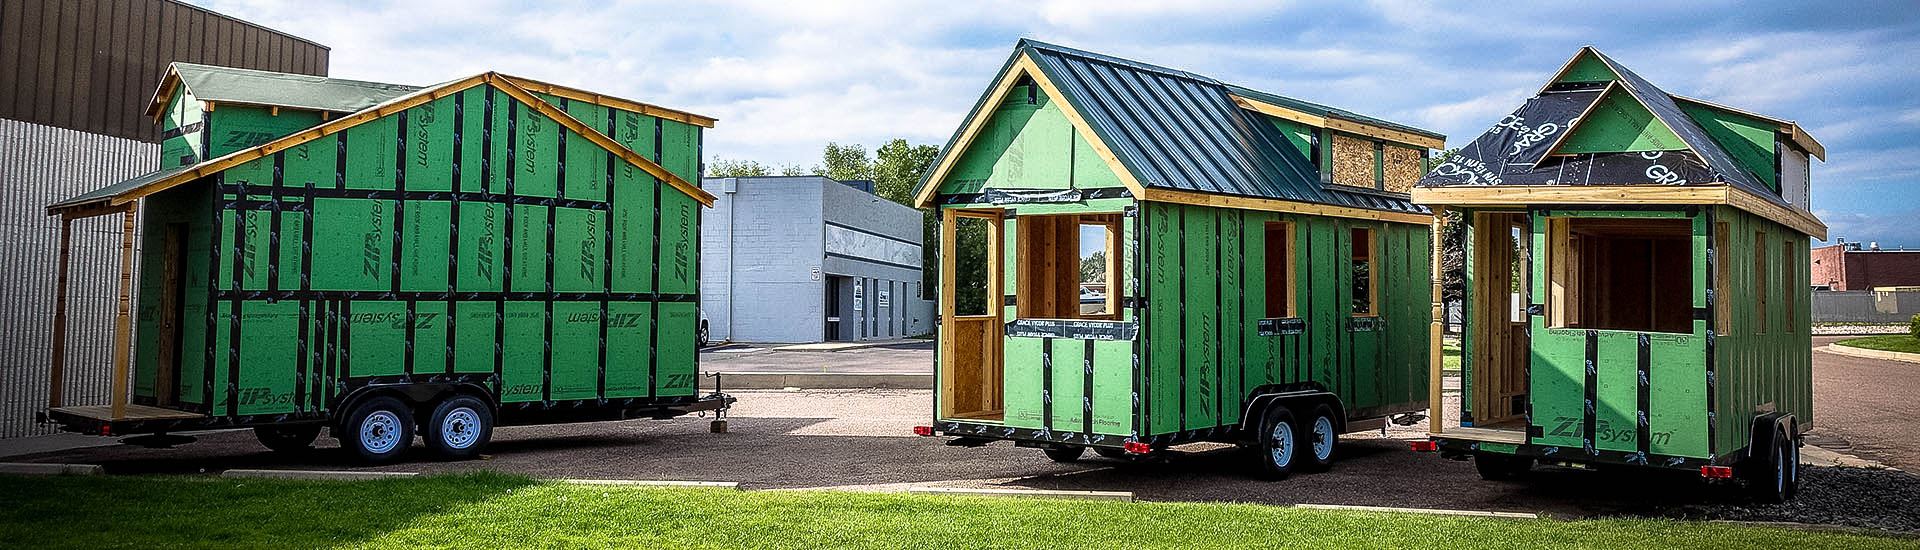 Barn Raiser by Tumbleweed Tiny House Company